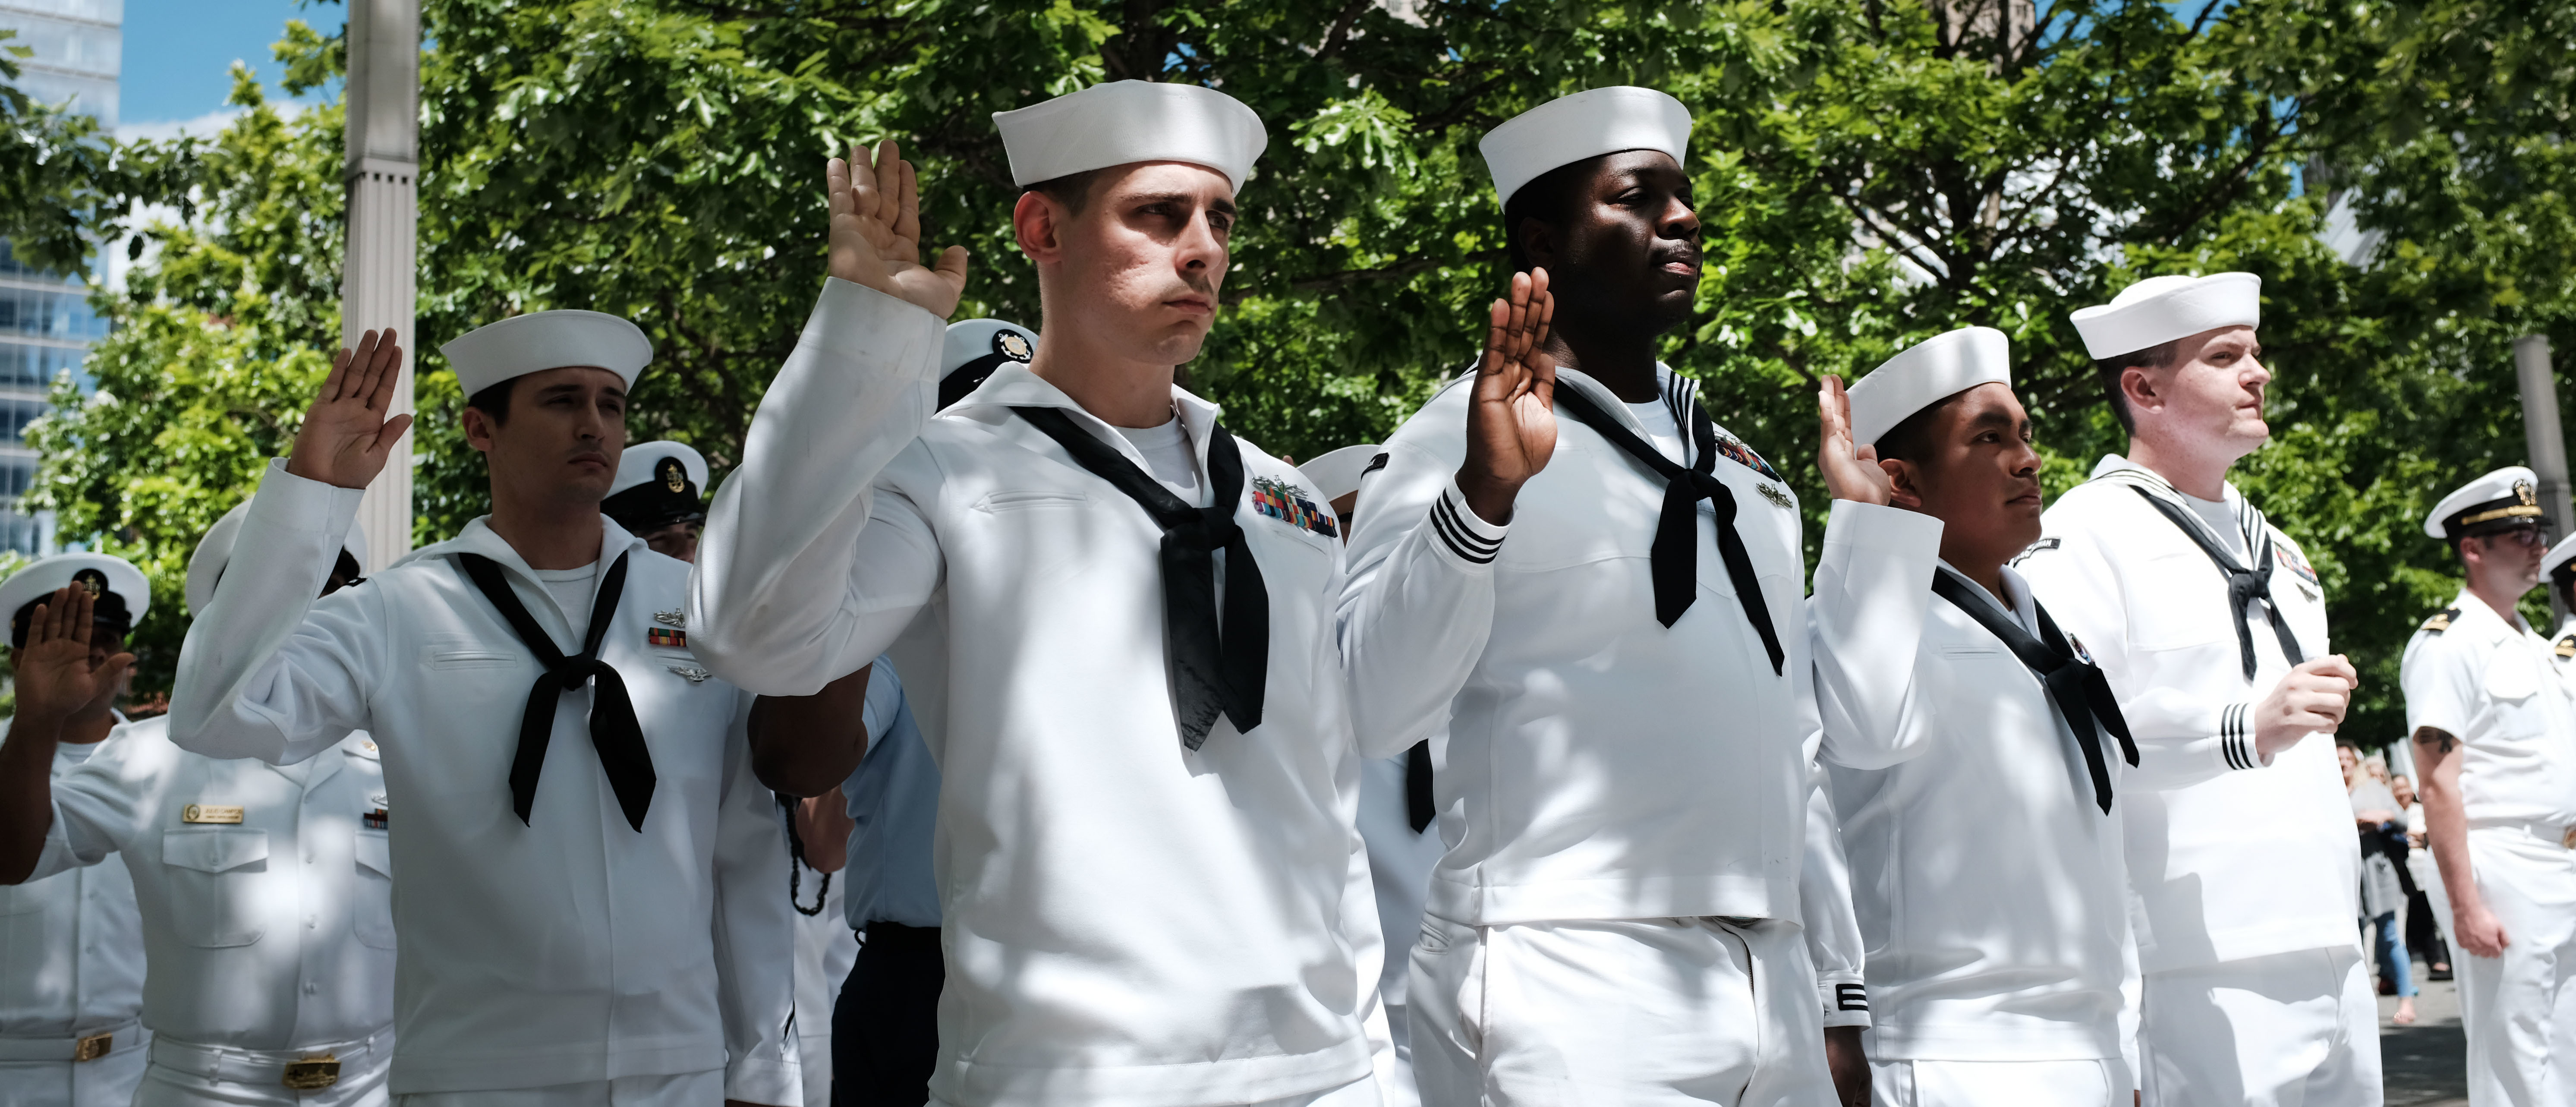 Members of the United States Navy participate in a re-enlistment and promotions ceremony at the September 11 Memorial on May 24, 2019 in New York City. (Spencer Platt/Getty Images)